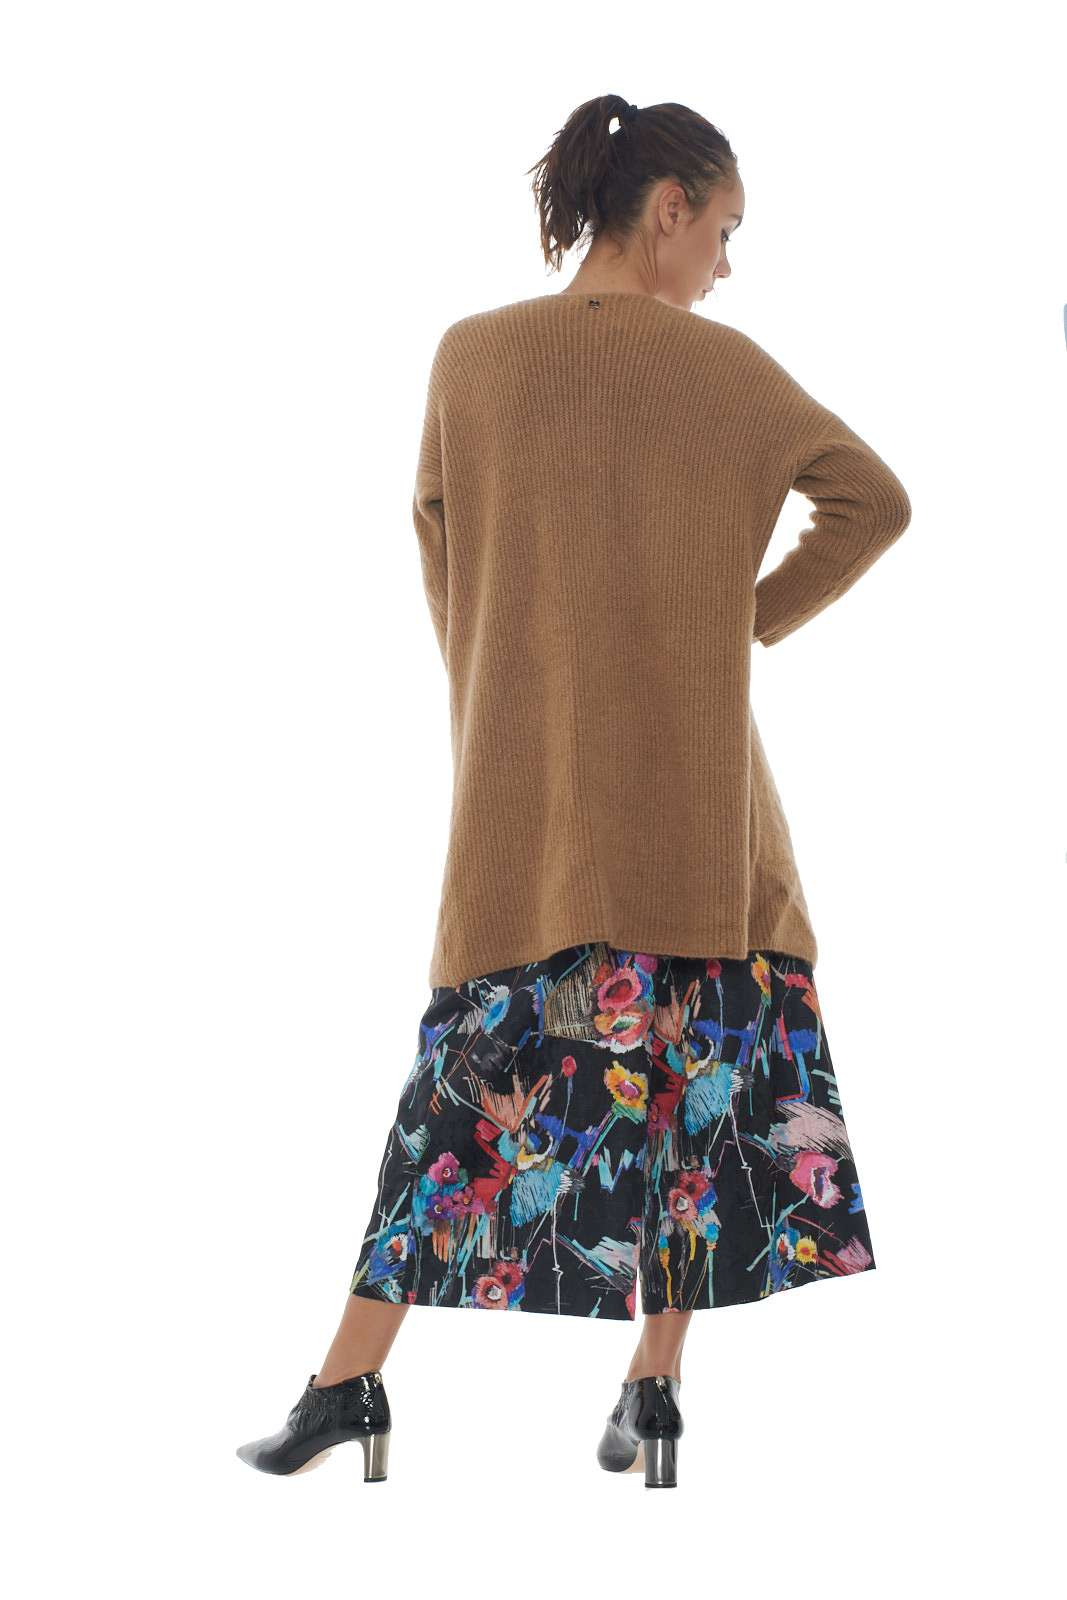 https://www.parmax.com/media/catalog/product/a/i/AI-outlet_parmax-cardigan-donna-Suf%C3%A8-SF2254-C.jpg